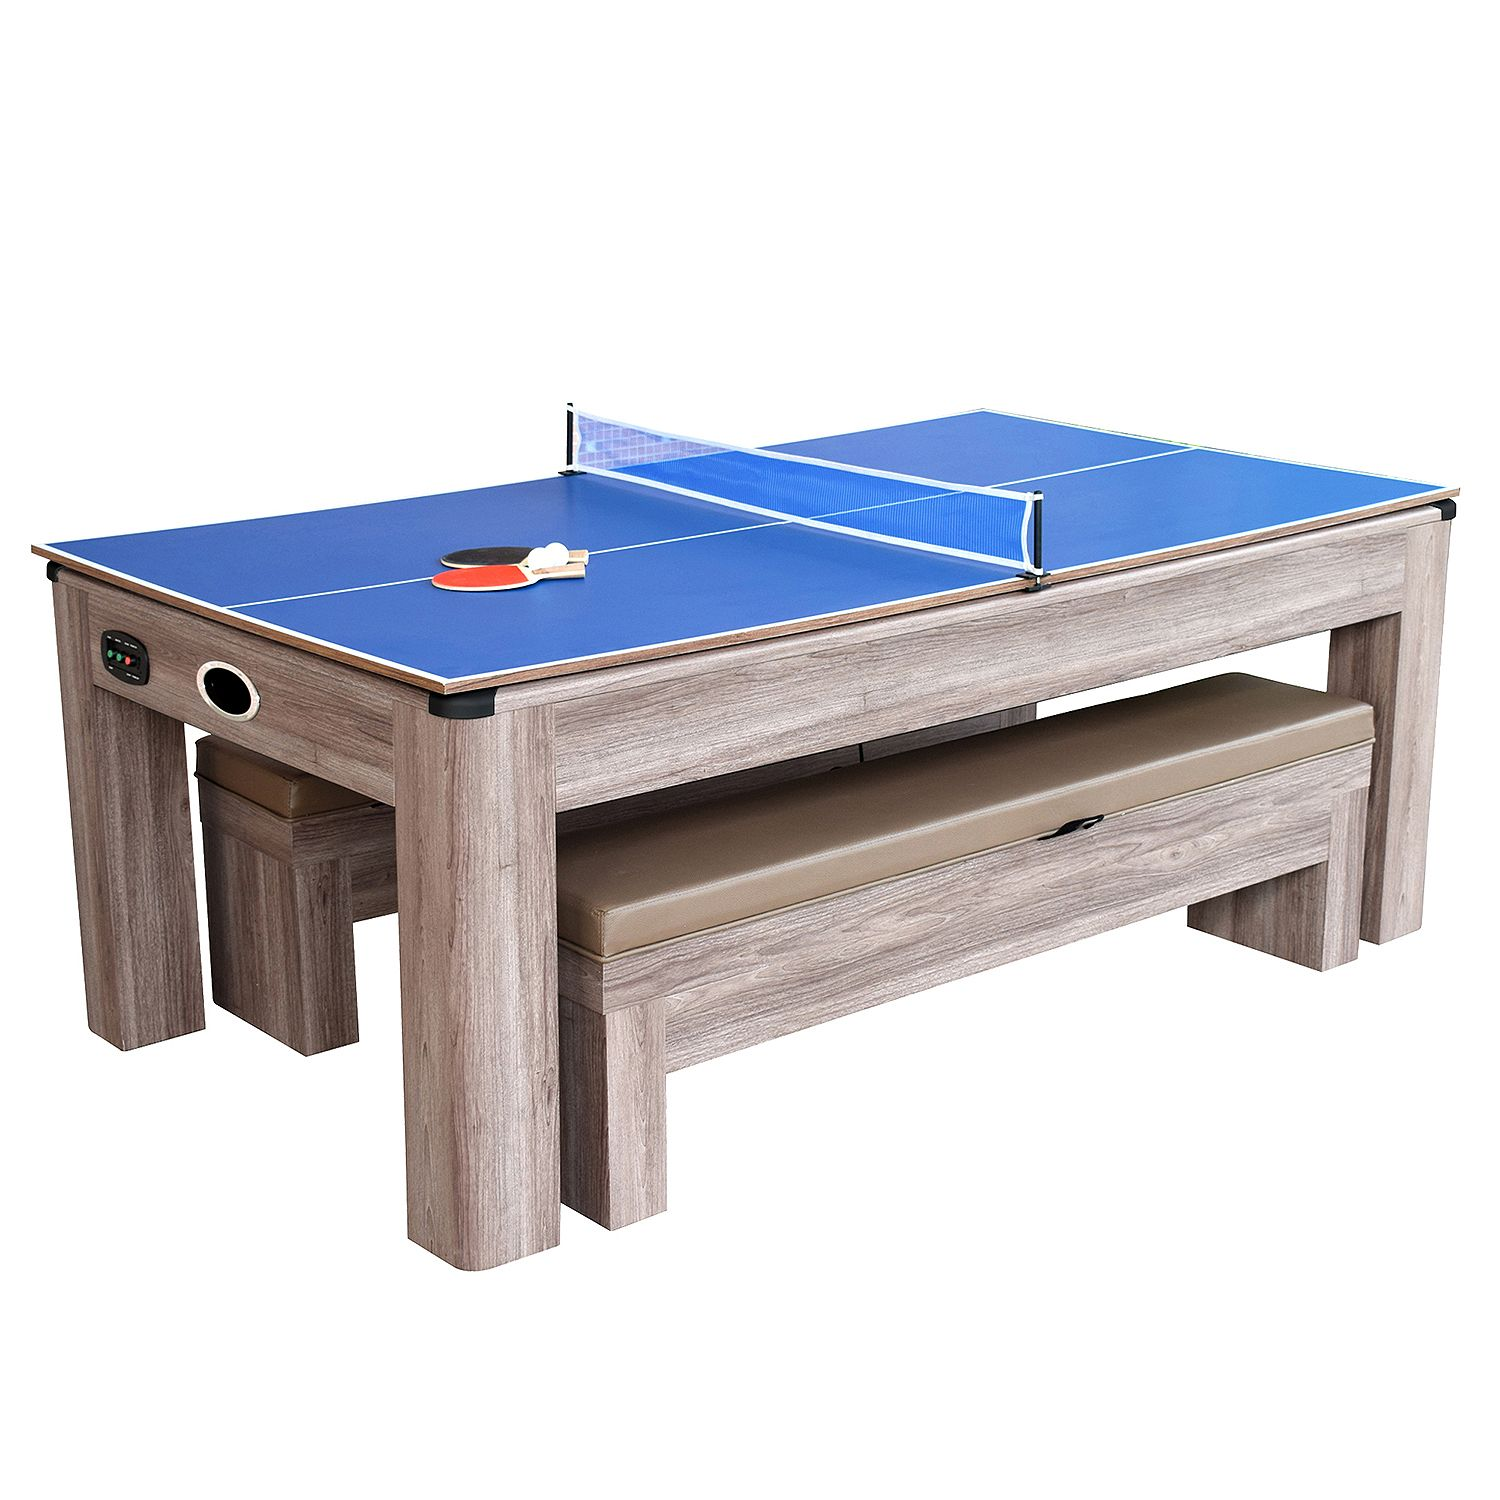 Attrayant Driftwood 7 Ft Air Hockey Table Combo Set With Benches